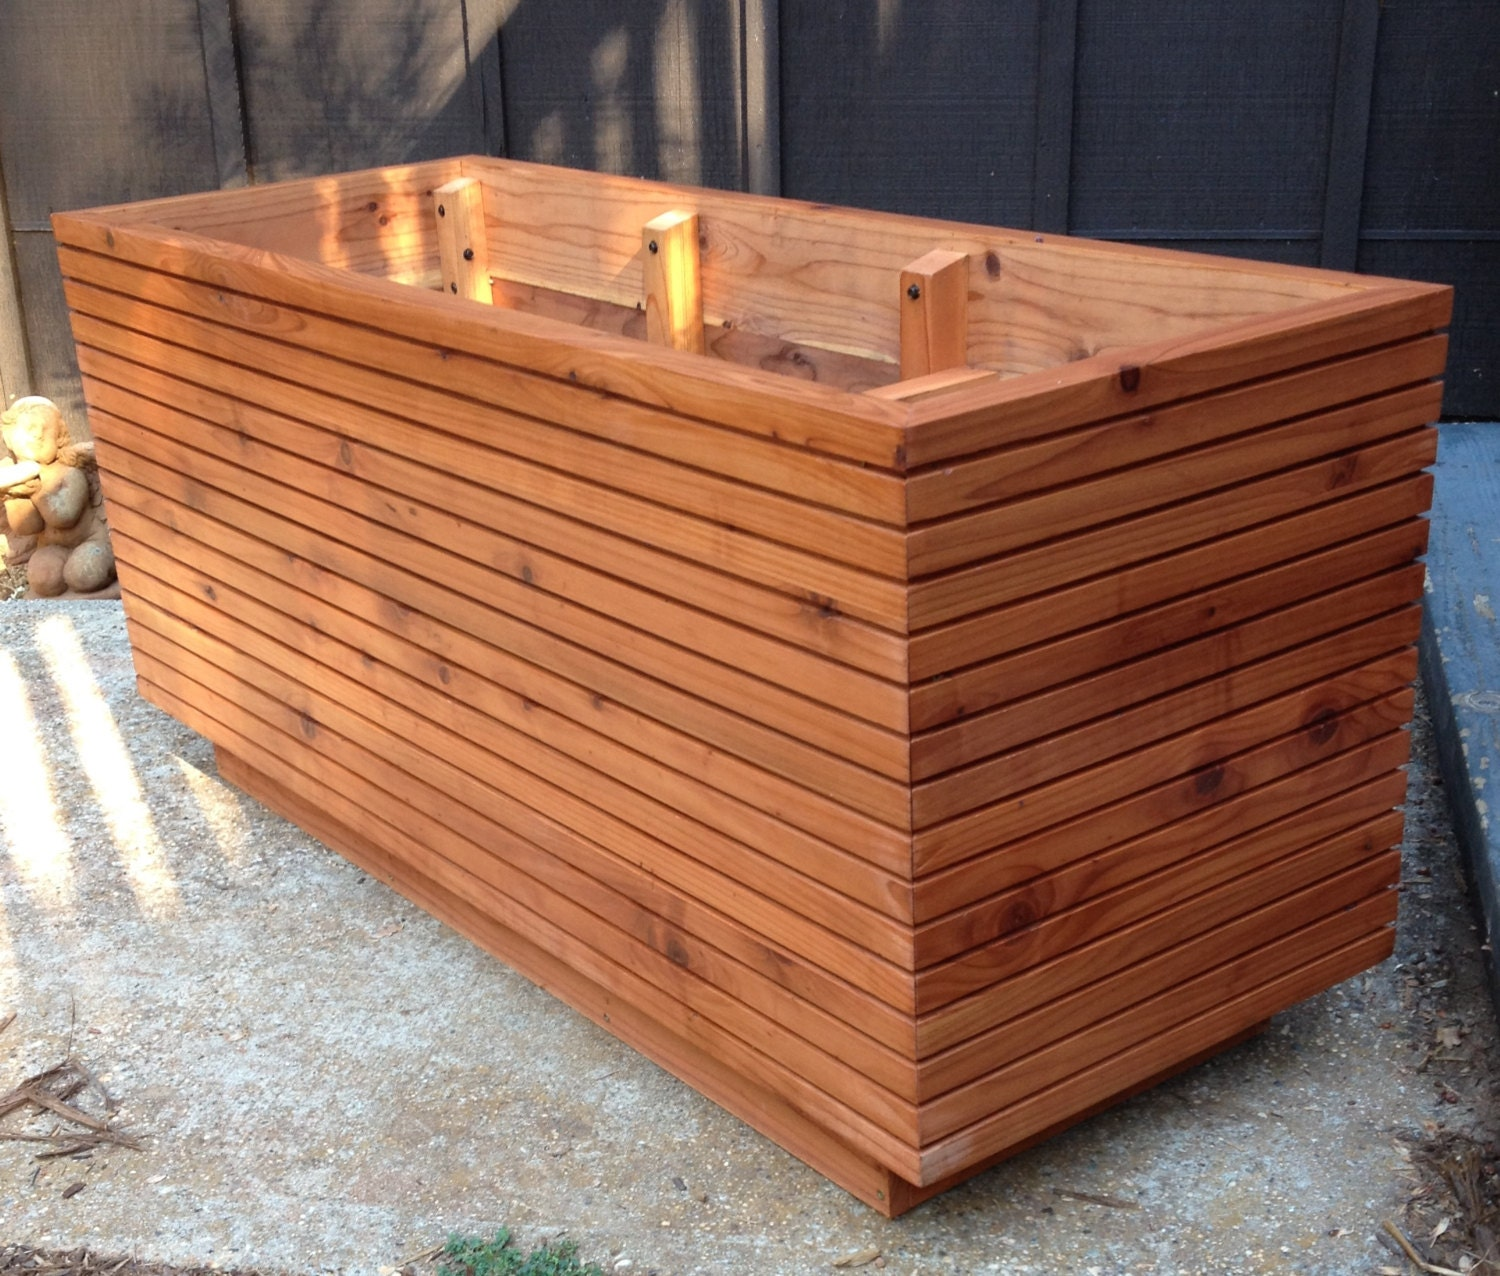 Tall modern redwood planter boxes free shipping 10 50 for Deck garden box designs